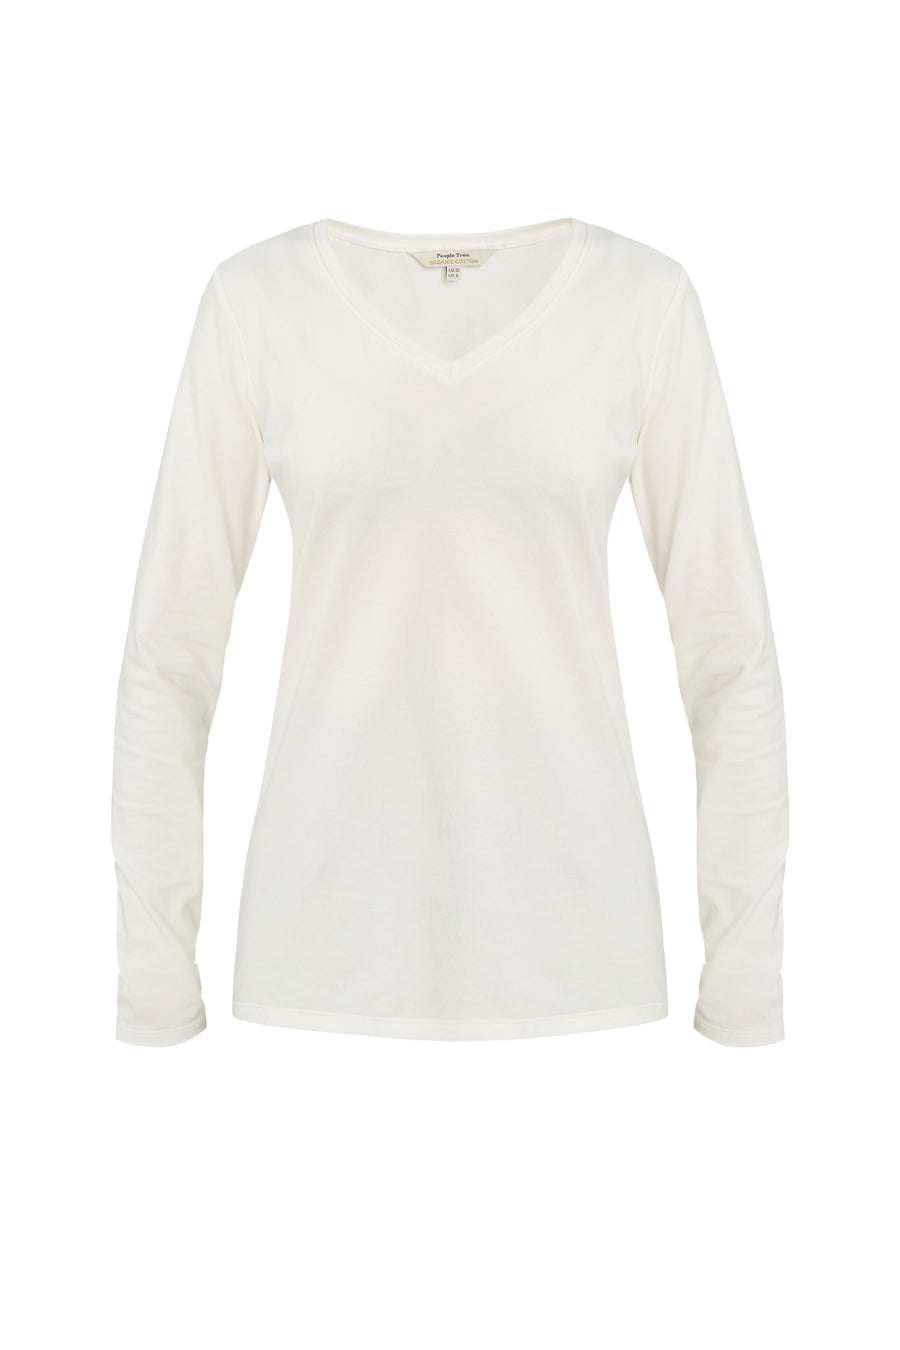 Amelie V-neck Top in White